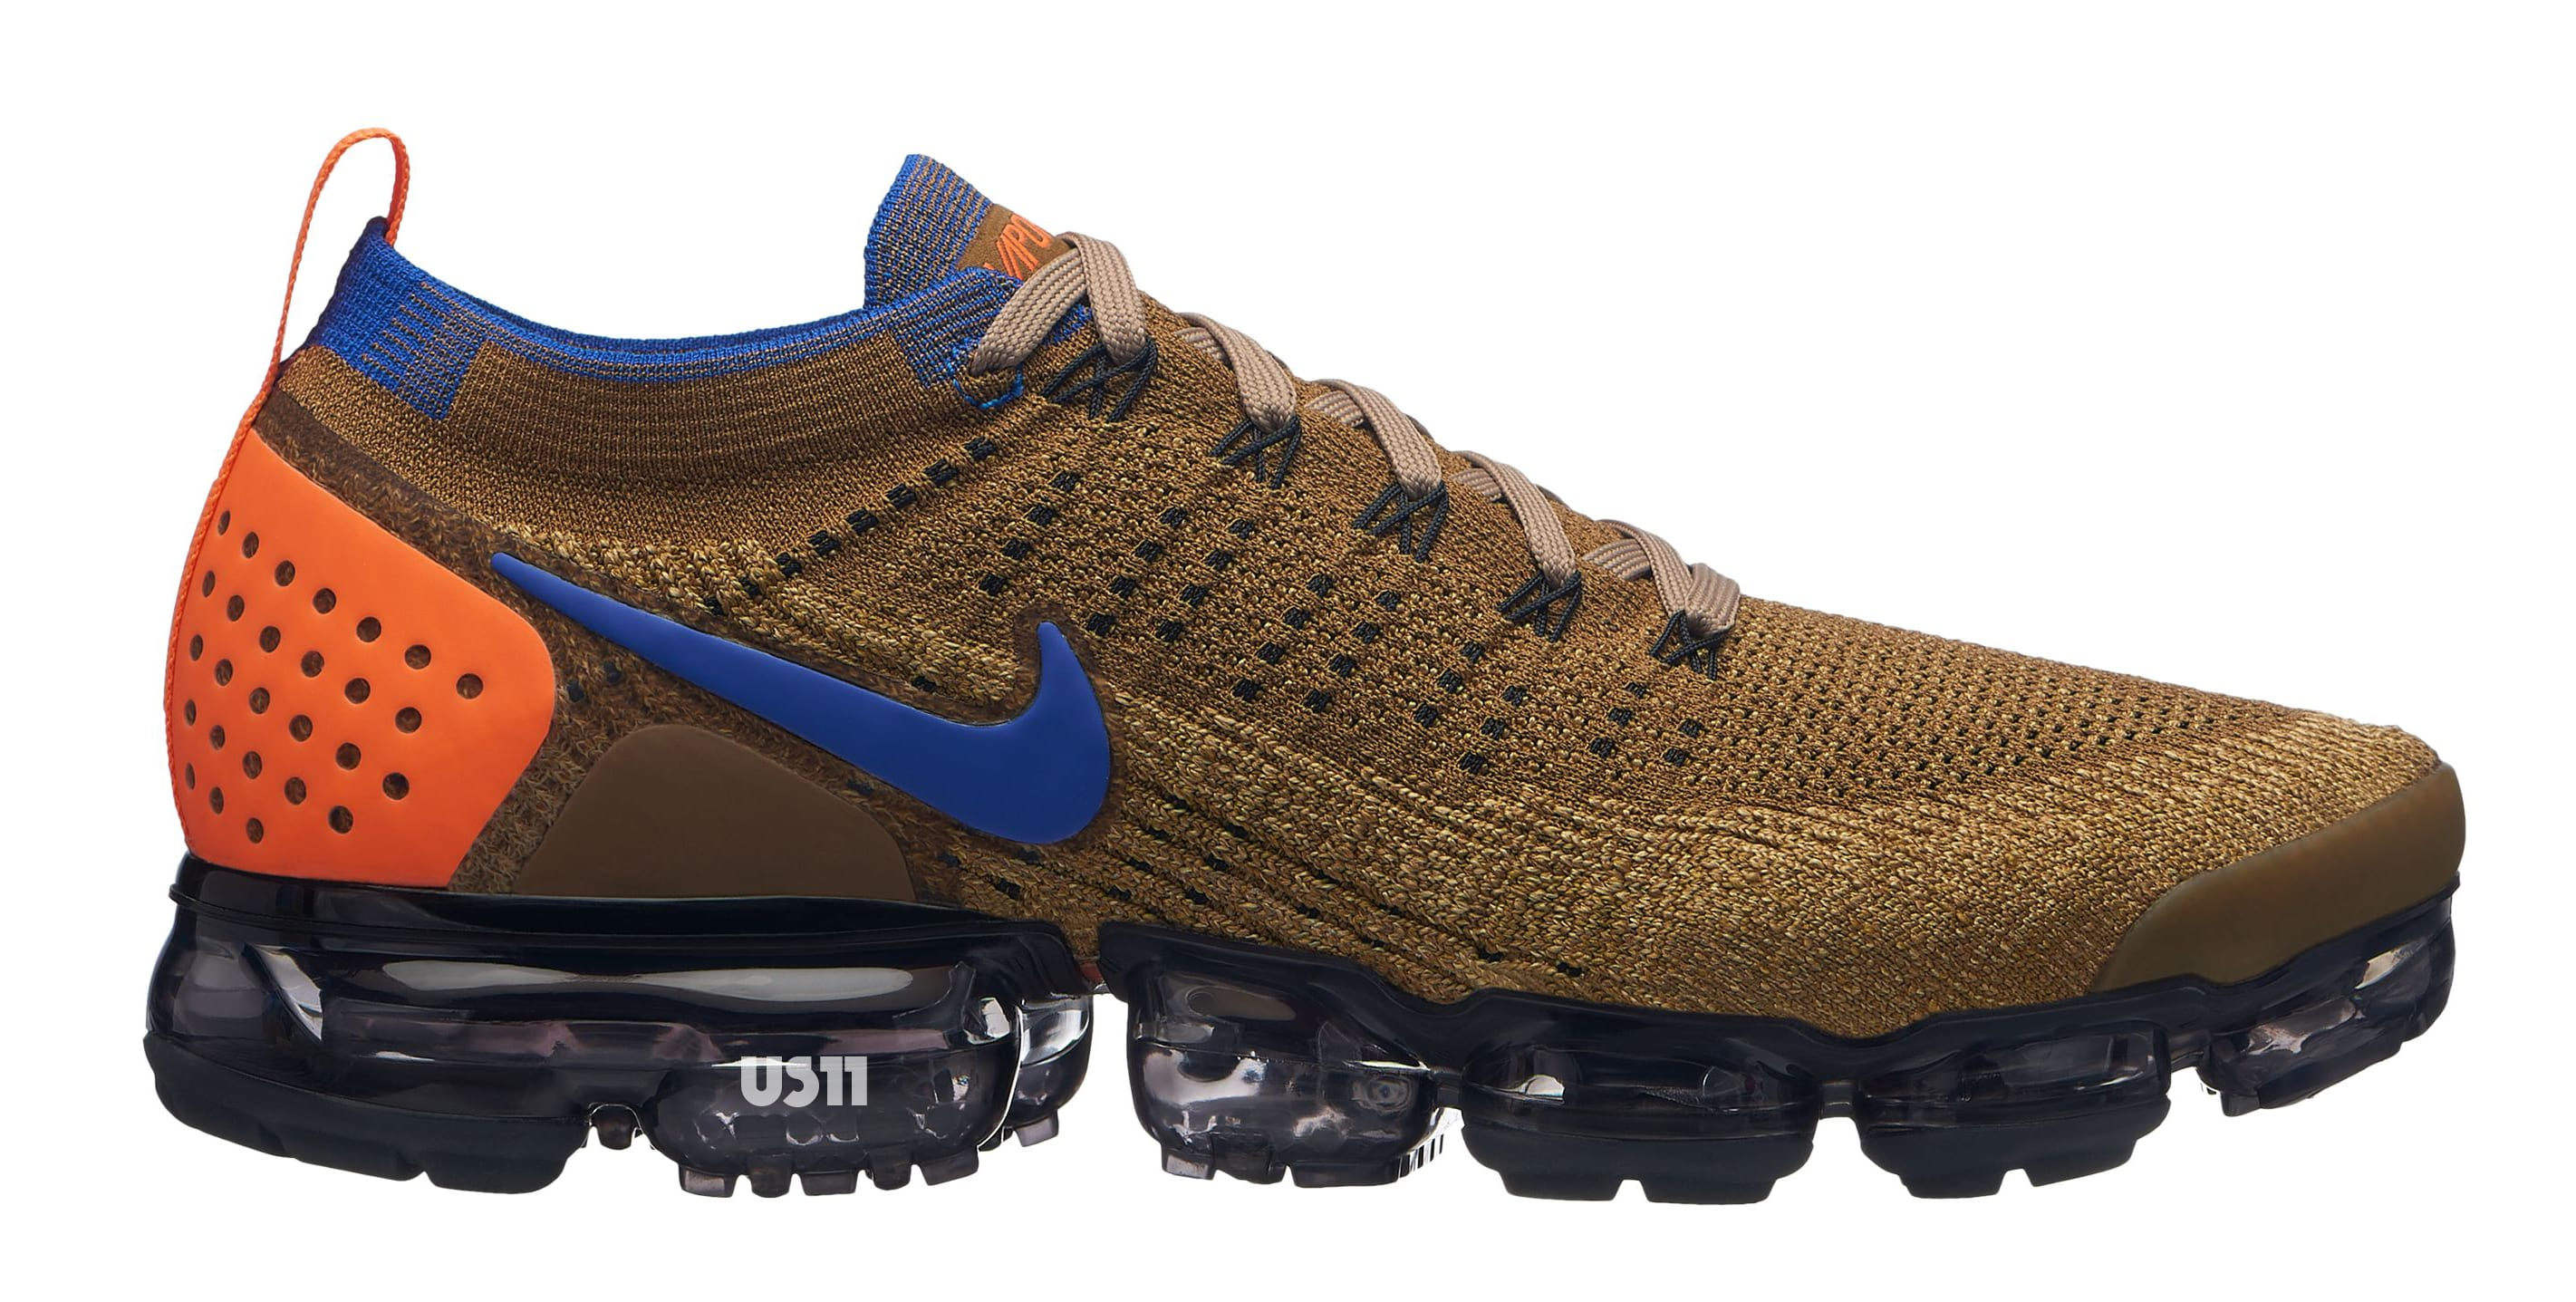 2018 Nike Air VaporMax Flyknit Color Blue